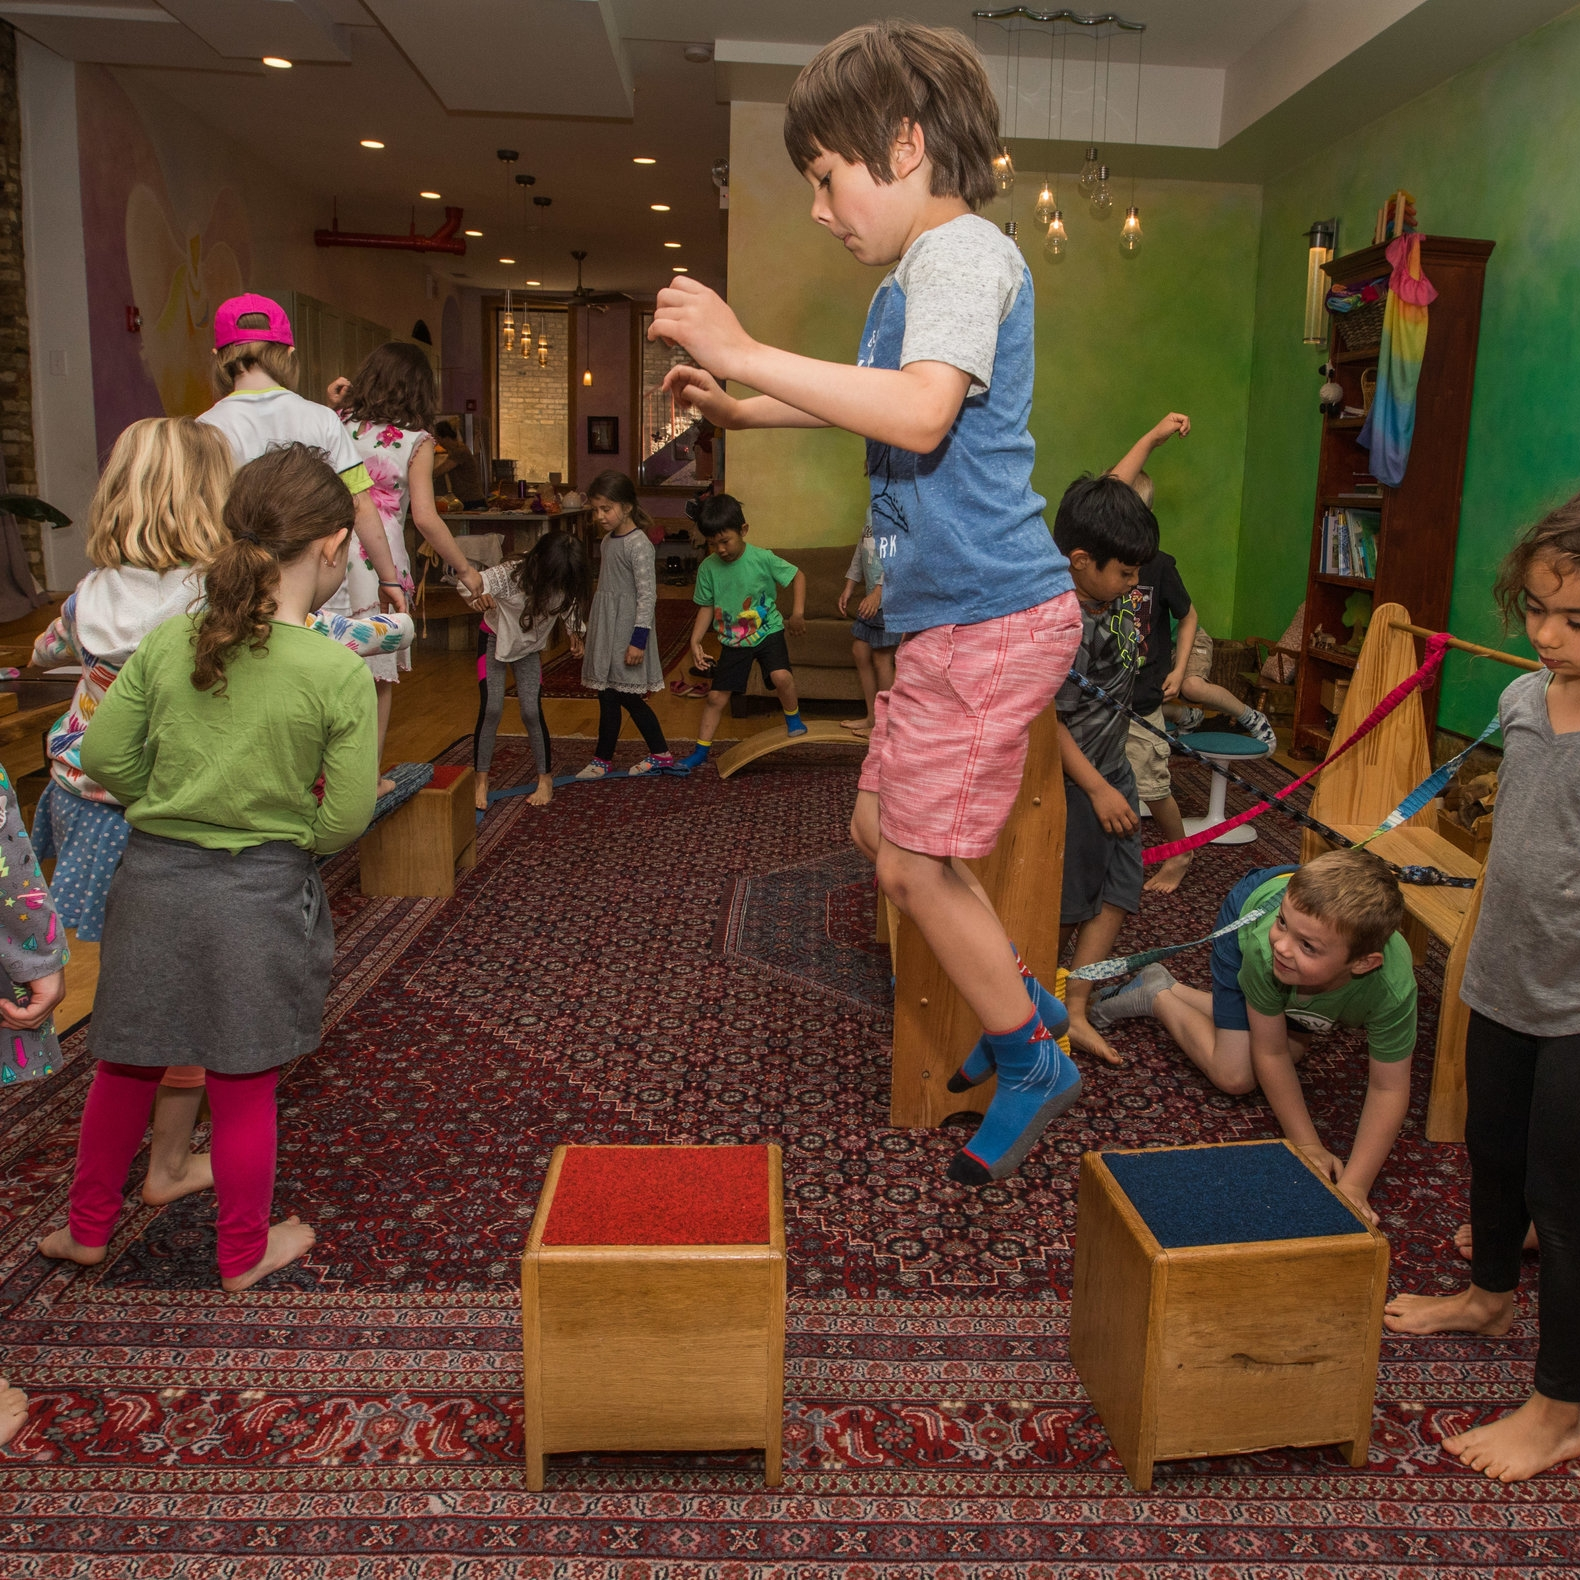 Our Curriculum - City Garden is a Waldorf Preschool and Kindergarten located in the Arts District of Pilsen. Our program offers a play-based curriculum for children ages 3-6 years old. Waldorf education is based on an Anthroposophical understanding of human development.Learn more.